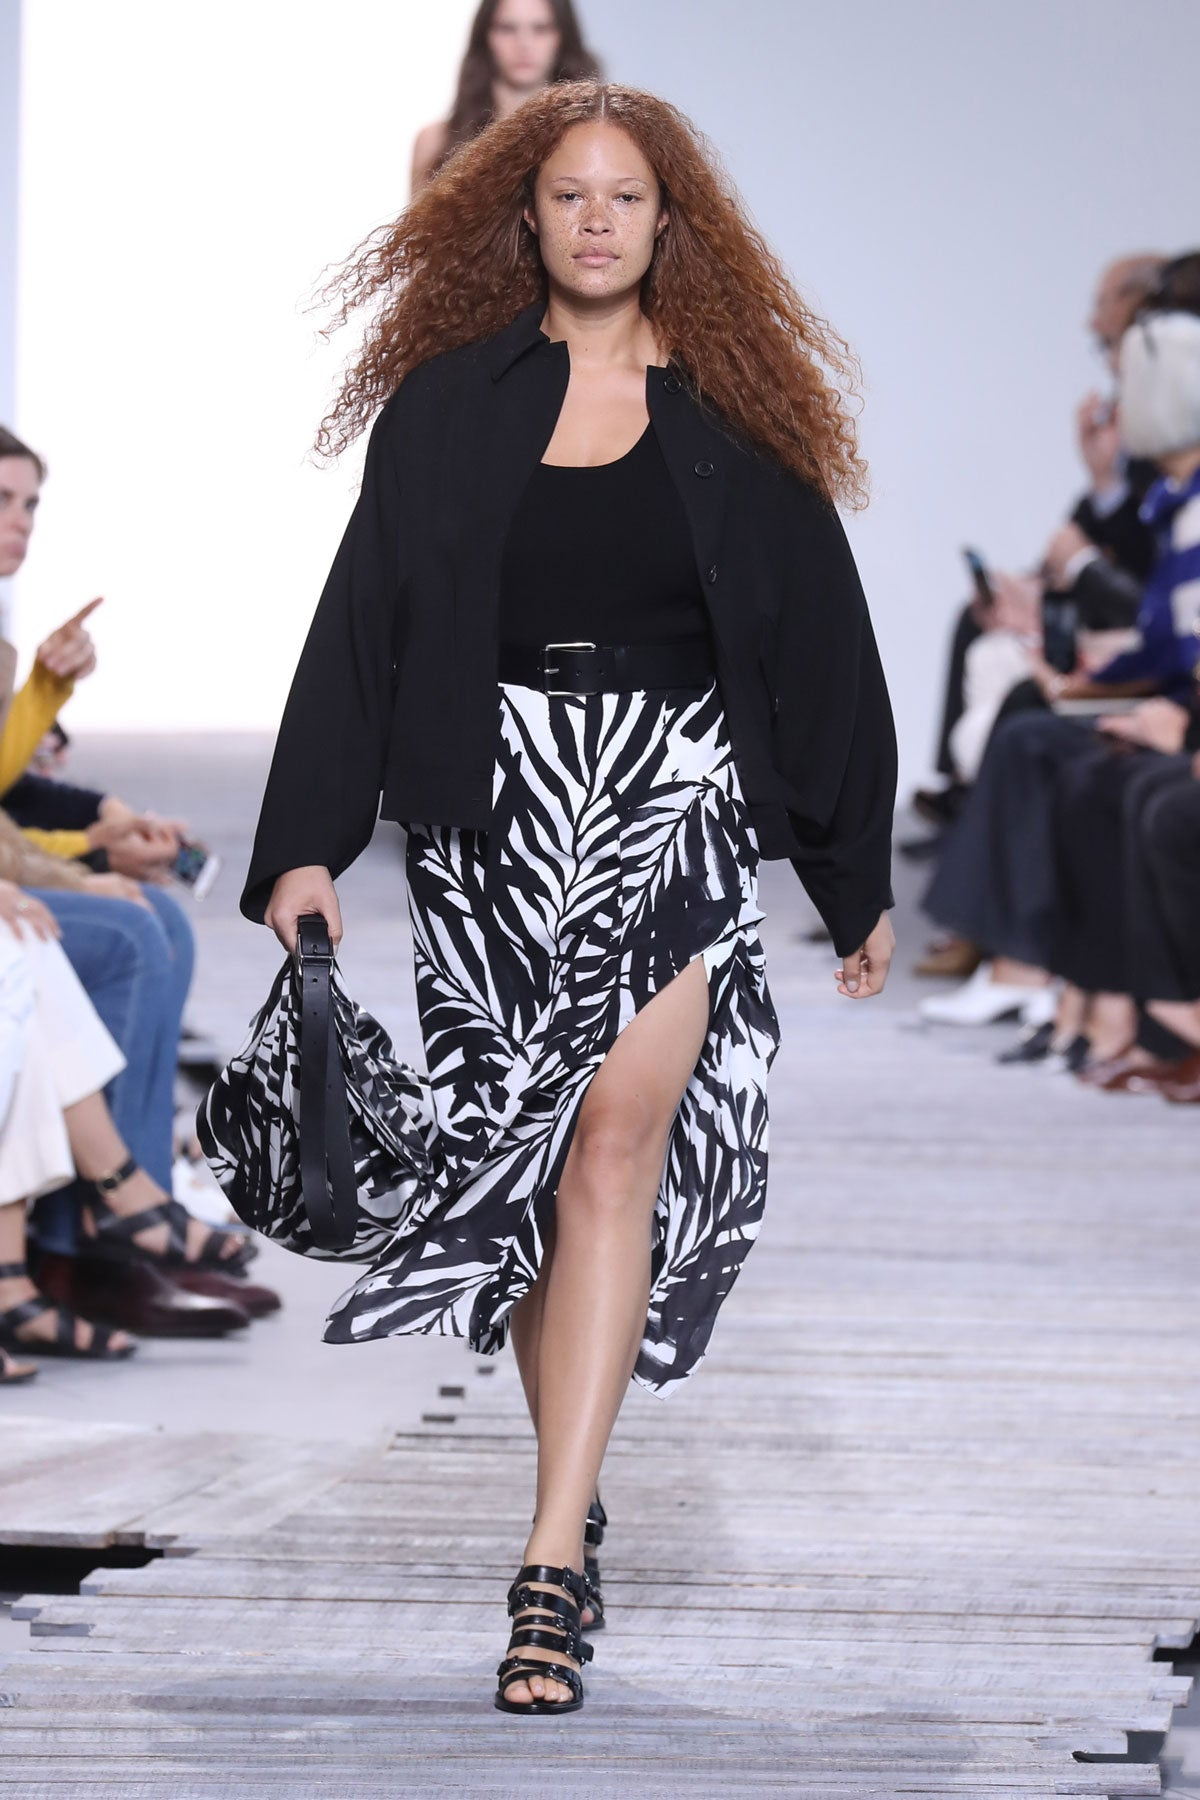 Michael Kors spring 2018 runway show during New York Fashion Week.